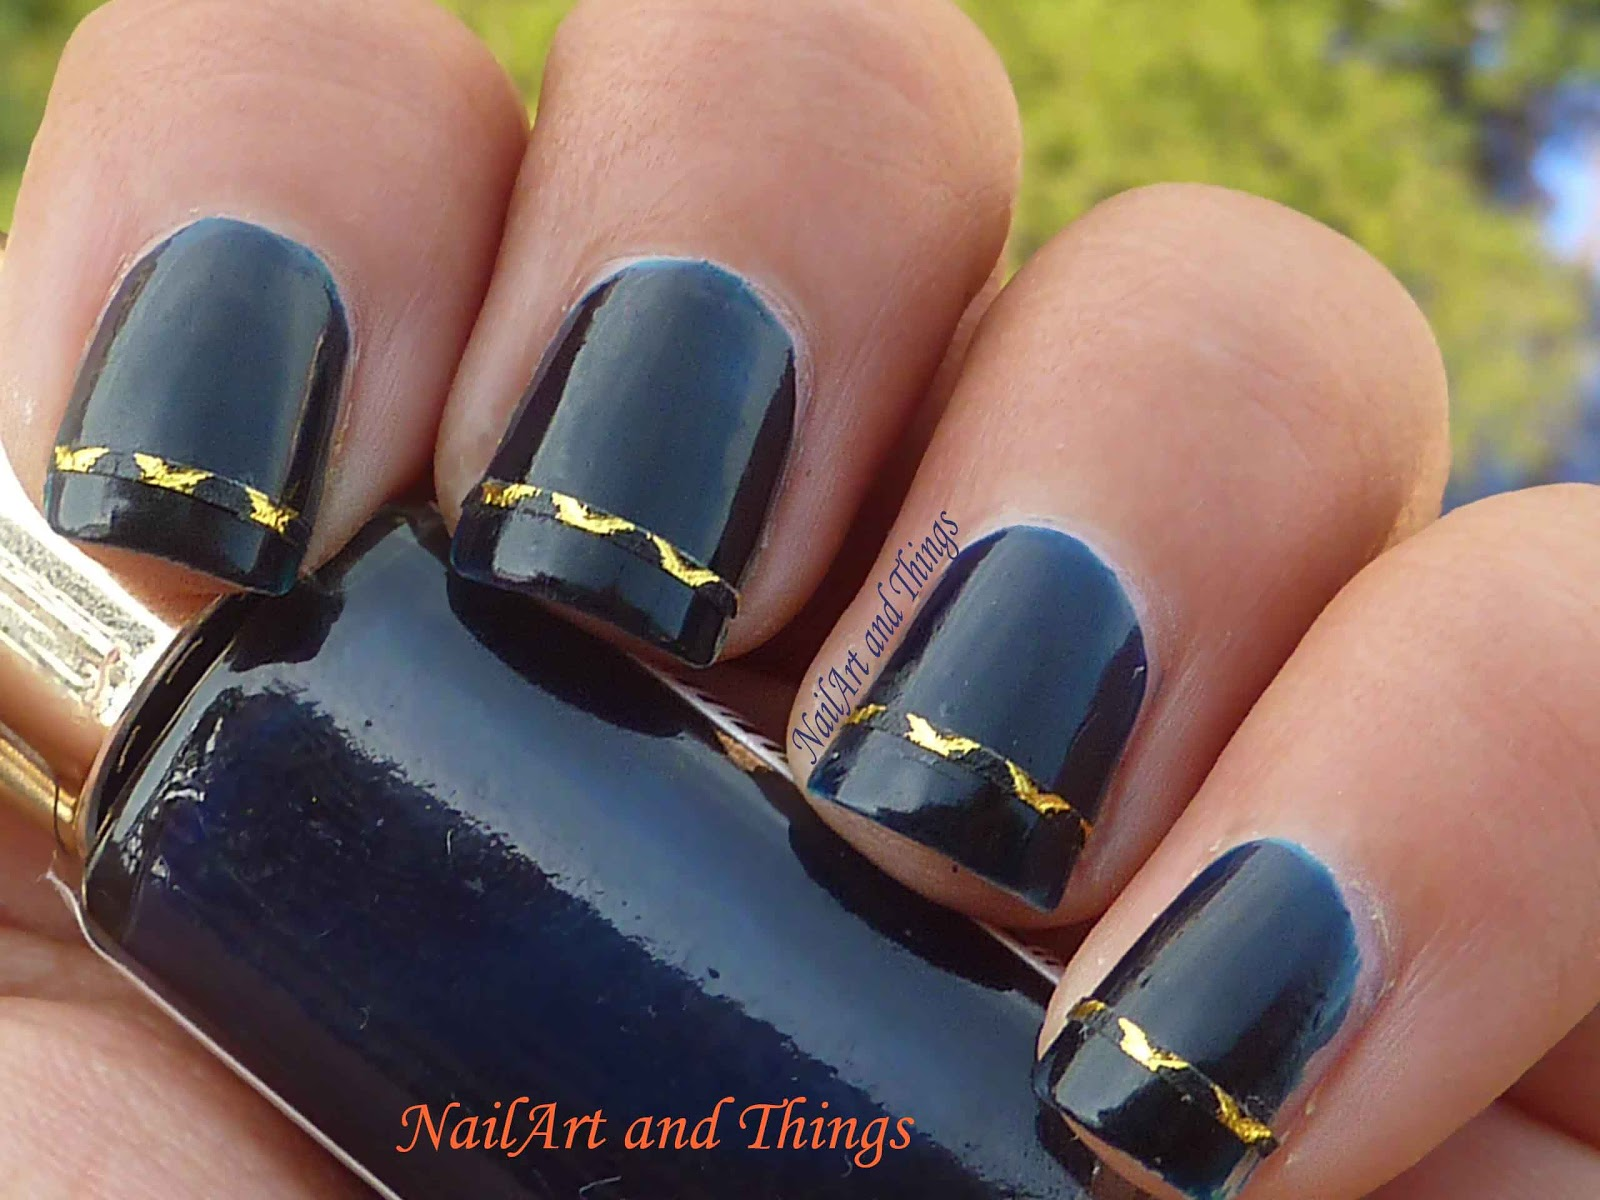 Nailart and things striping tape nail art striping tape nail art prinsesfo Images